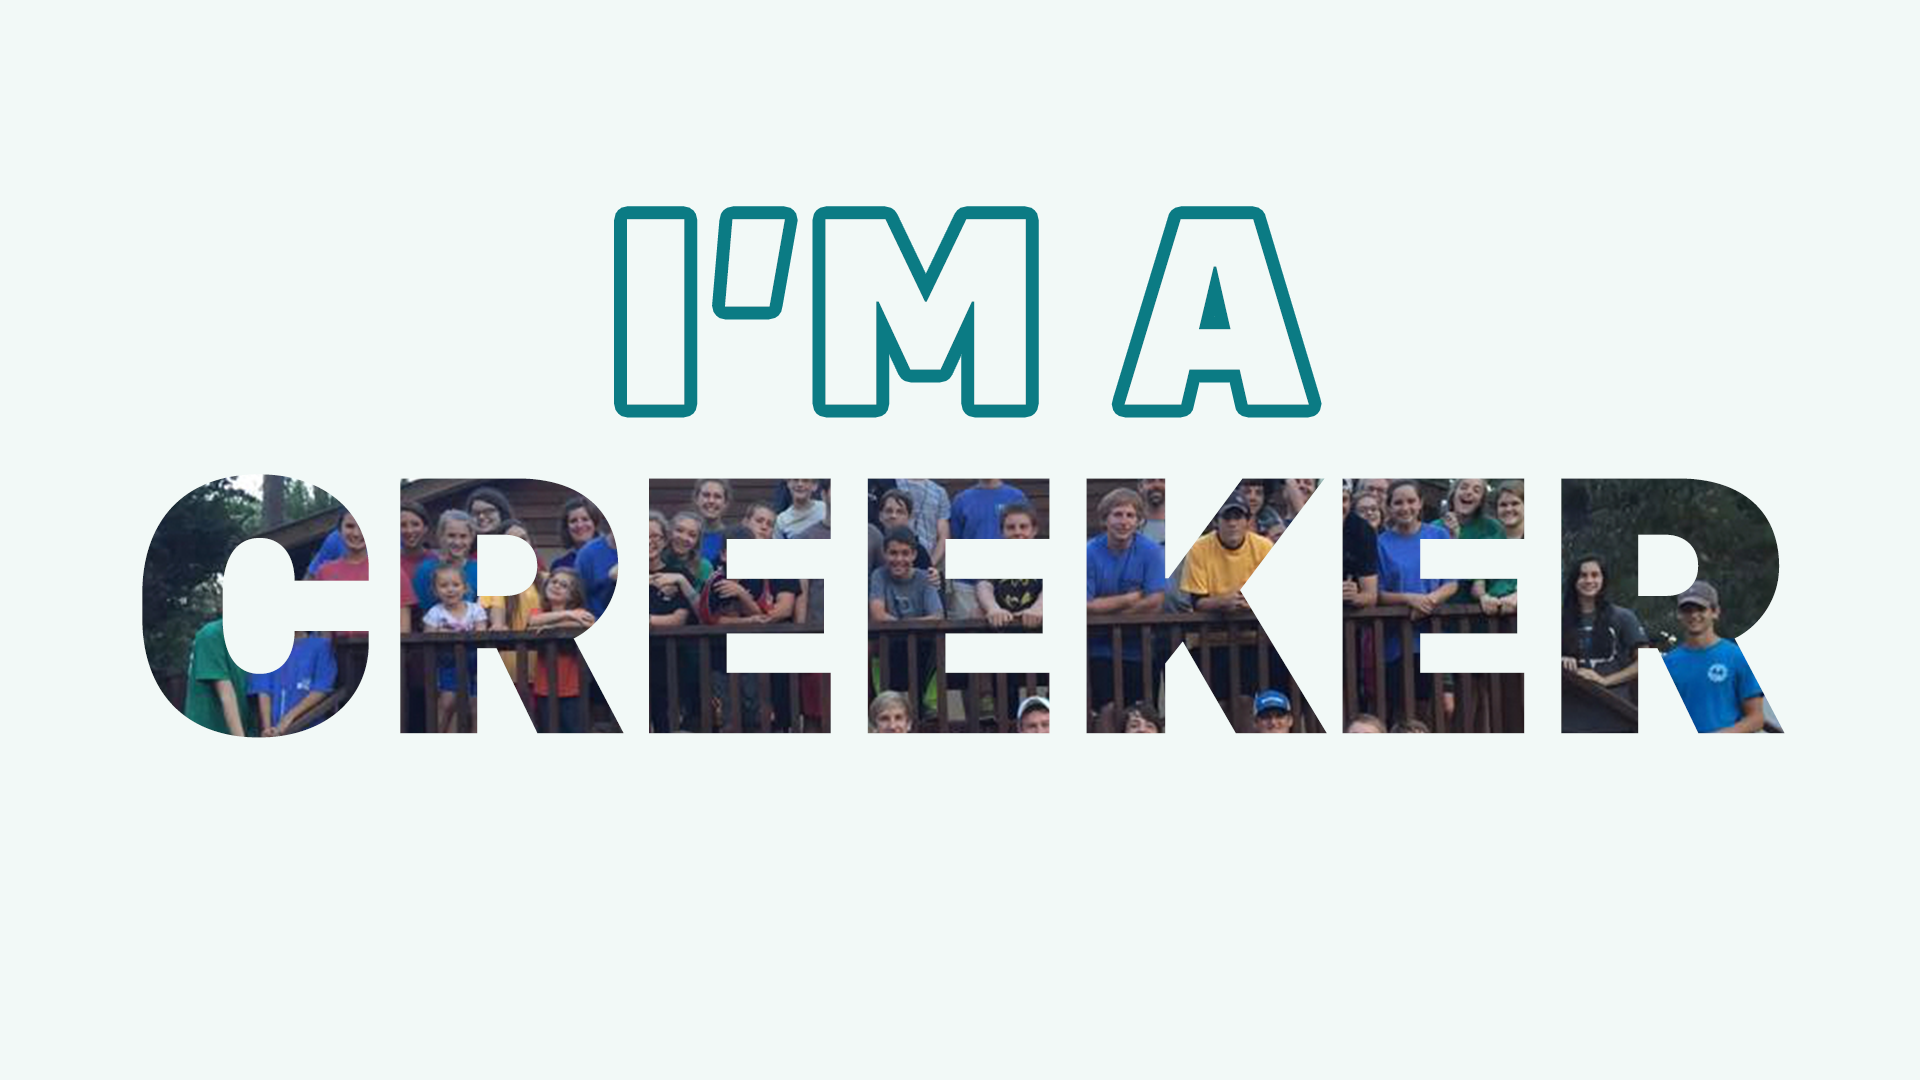 I'M A CREEKER SERIES   5 week series you can repackage to teach your students the purposes of your youth ministry